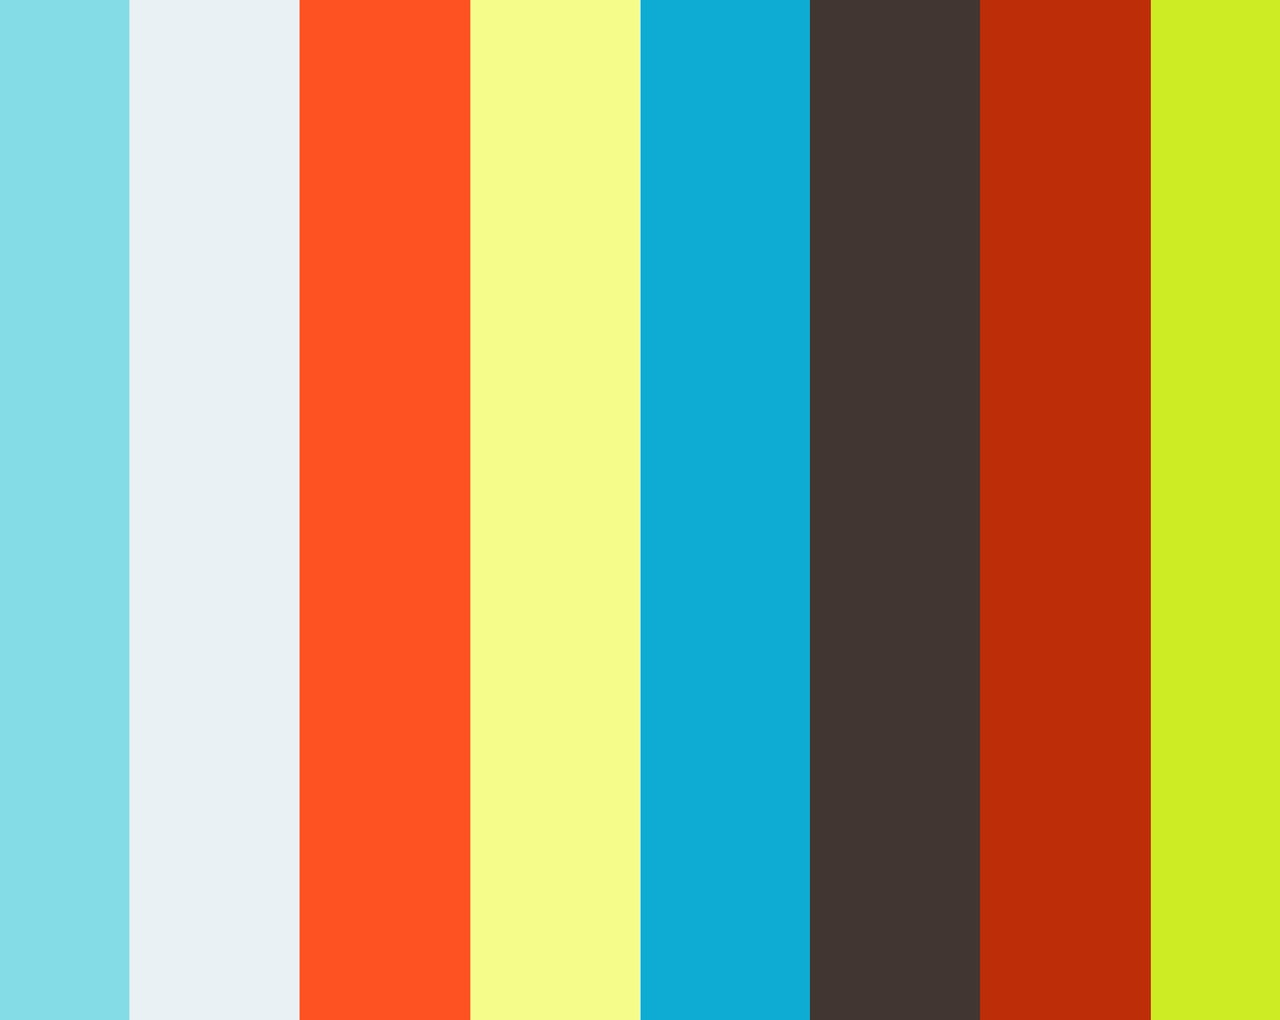 Point. Art class model nude